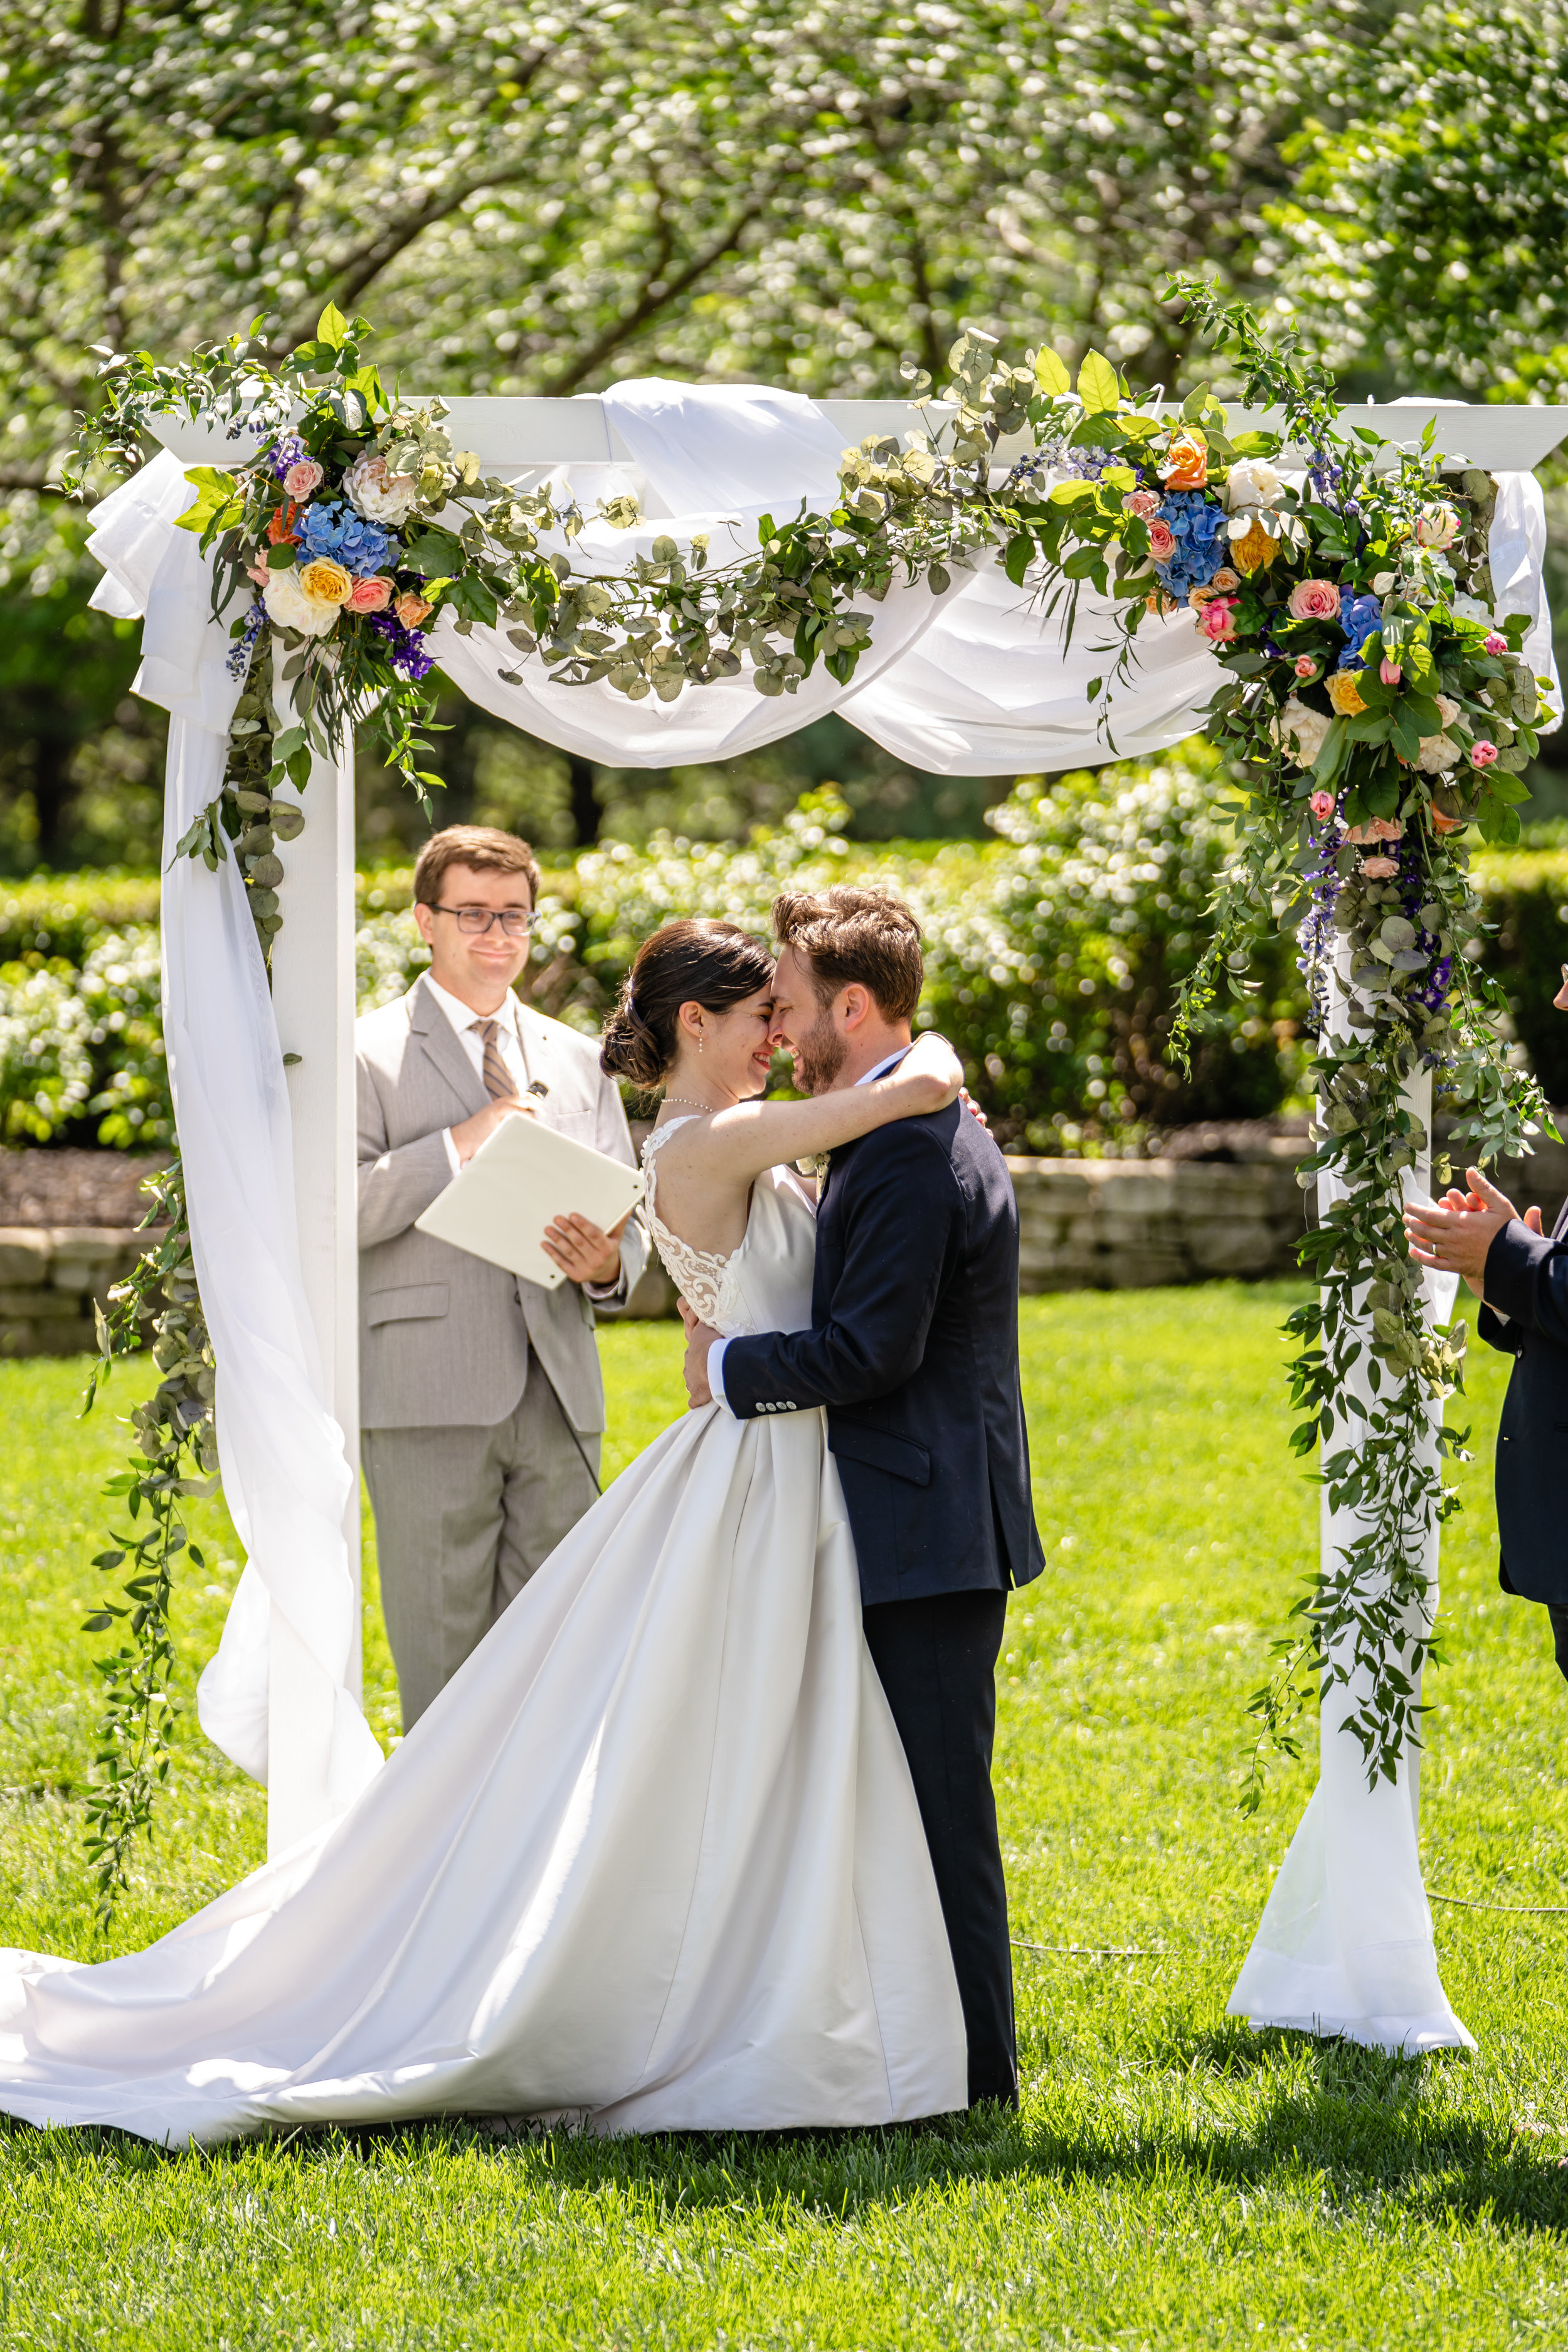 The couple embraces after their first kiss as husband and wife! Overjoyed, they hug and smile under the beautifully designed arbor from The Flower Merchant coordinated by their intentional and creative wedding planner.